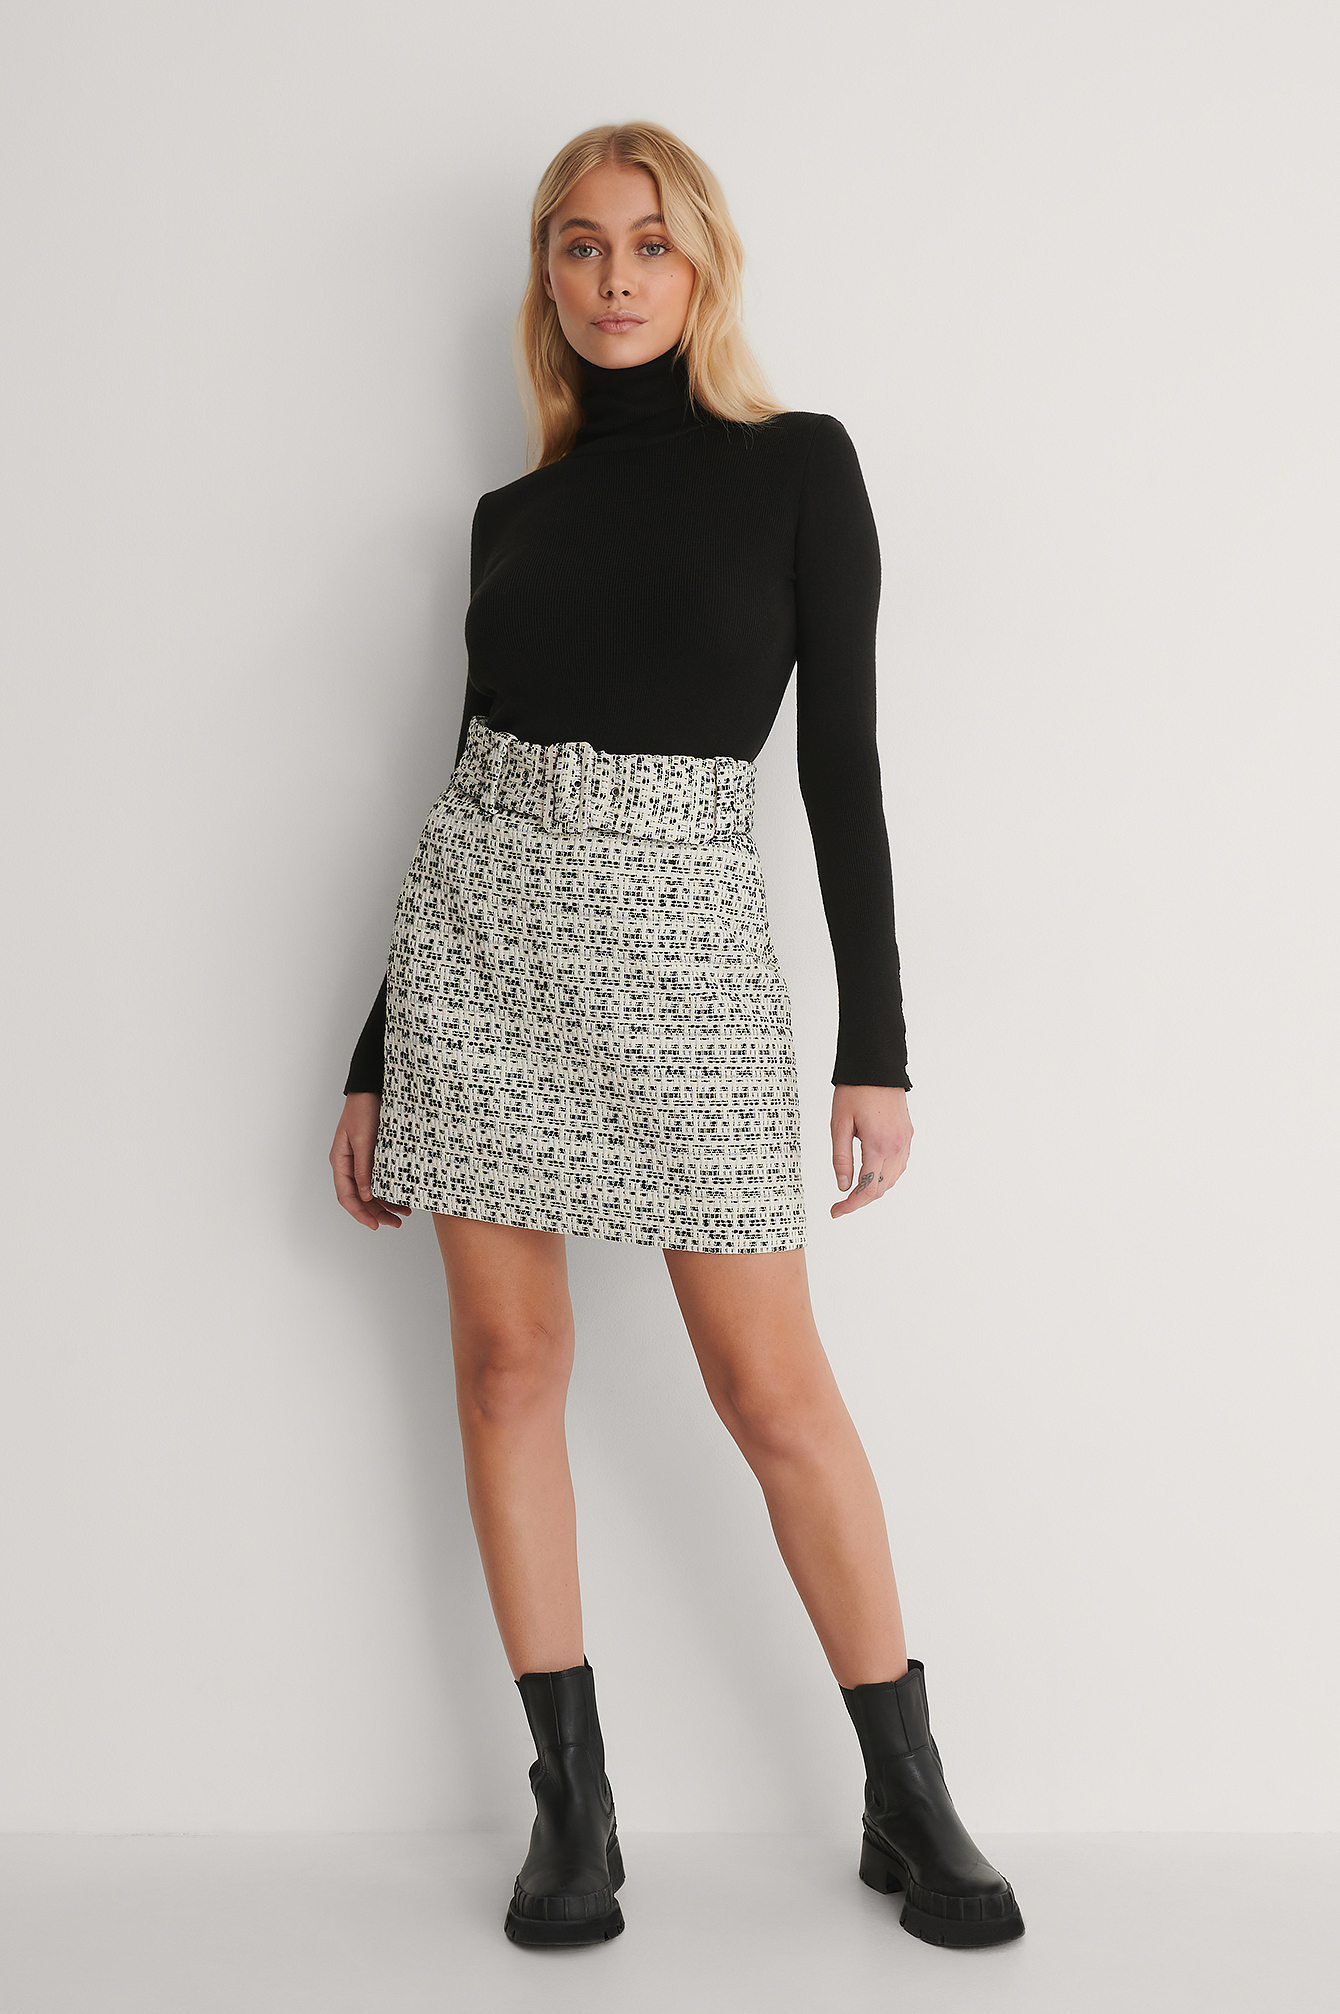 Black/White Belted Tweed Mini Skirt